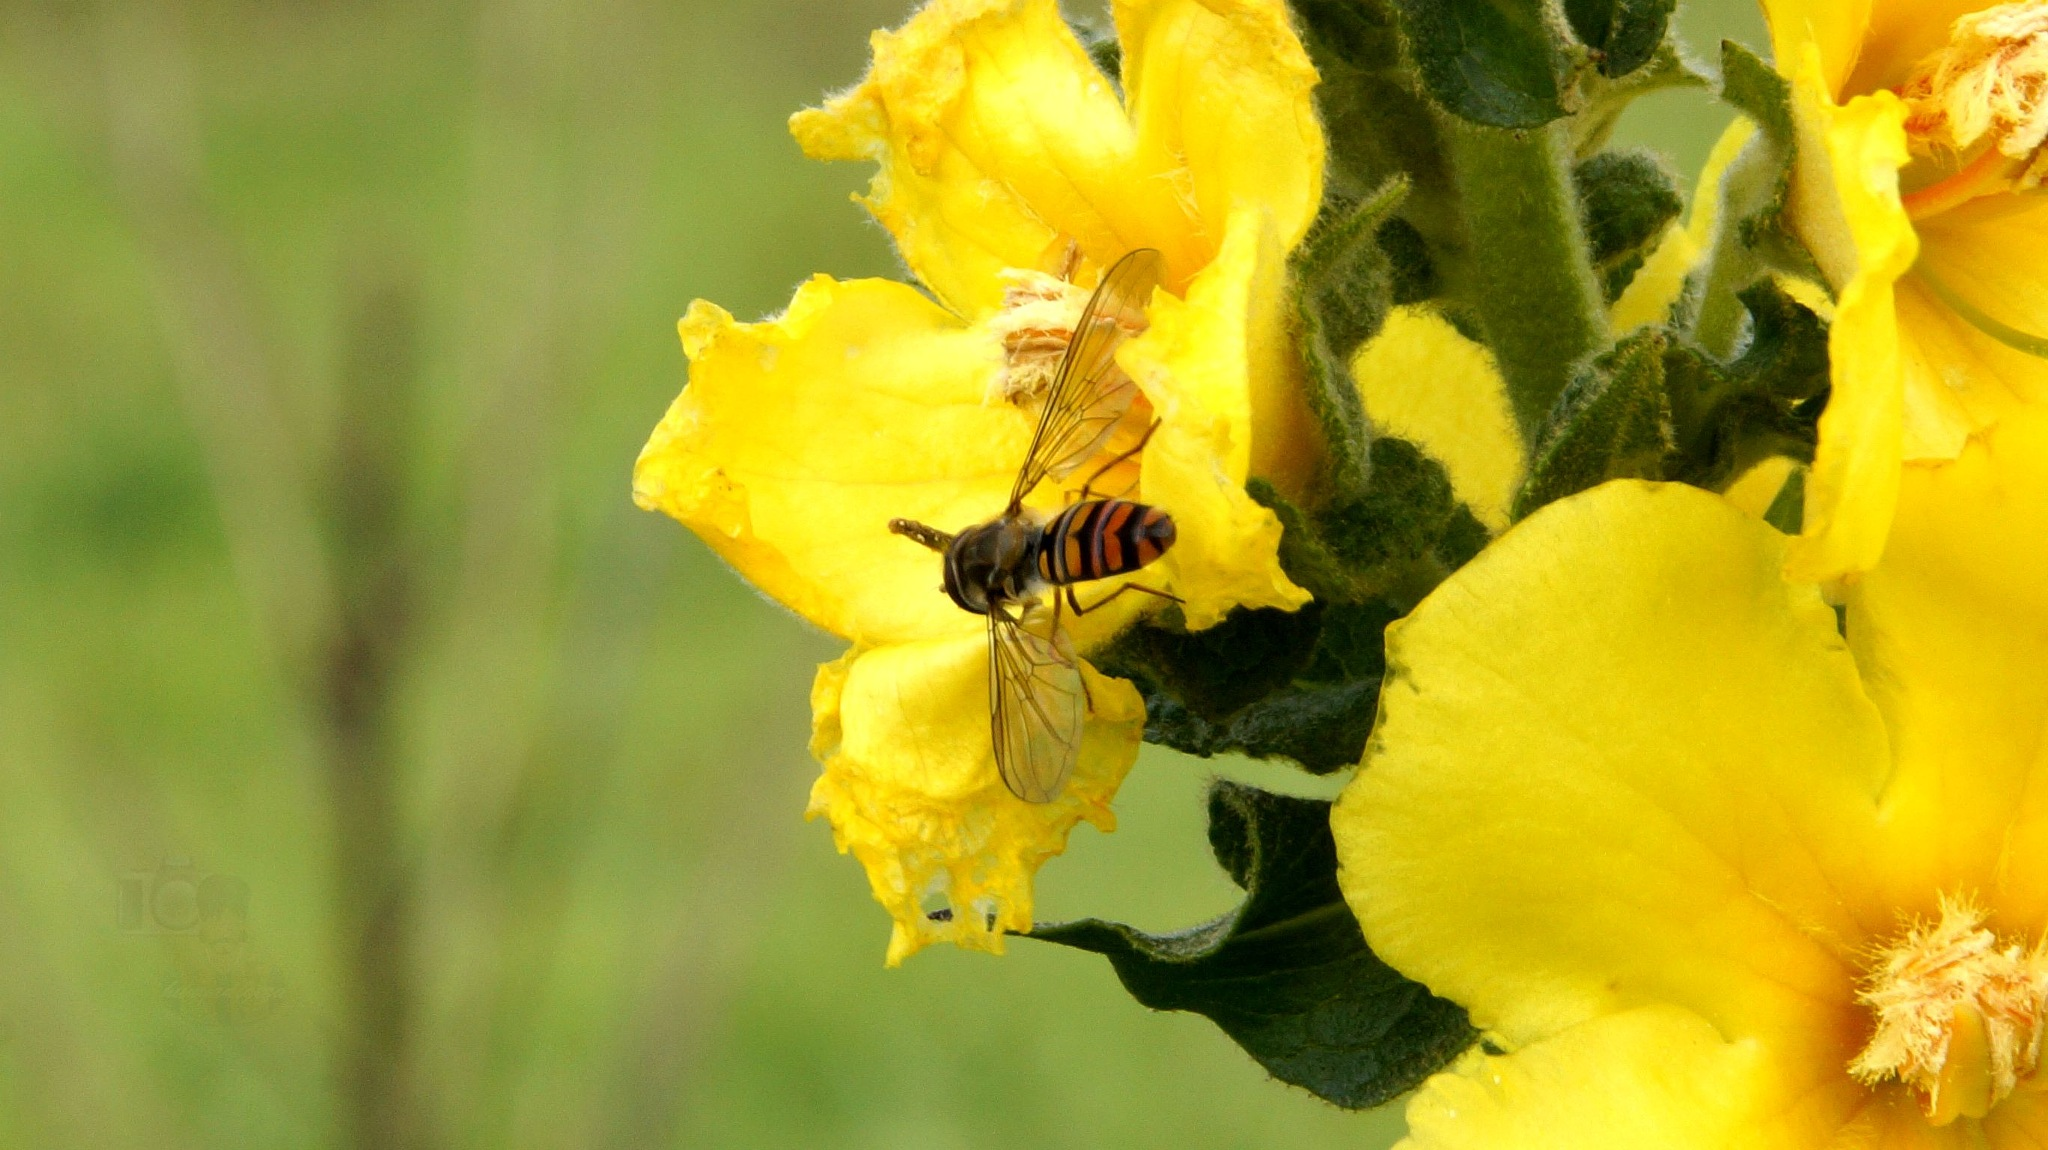 Oct.25, last flower and last hoverfly by hunyadigeza